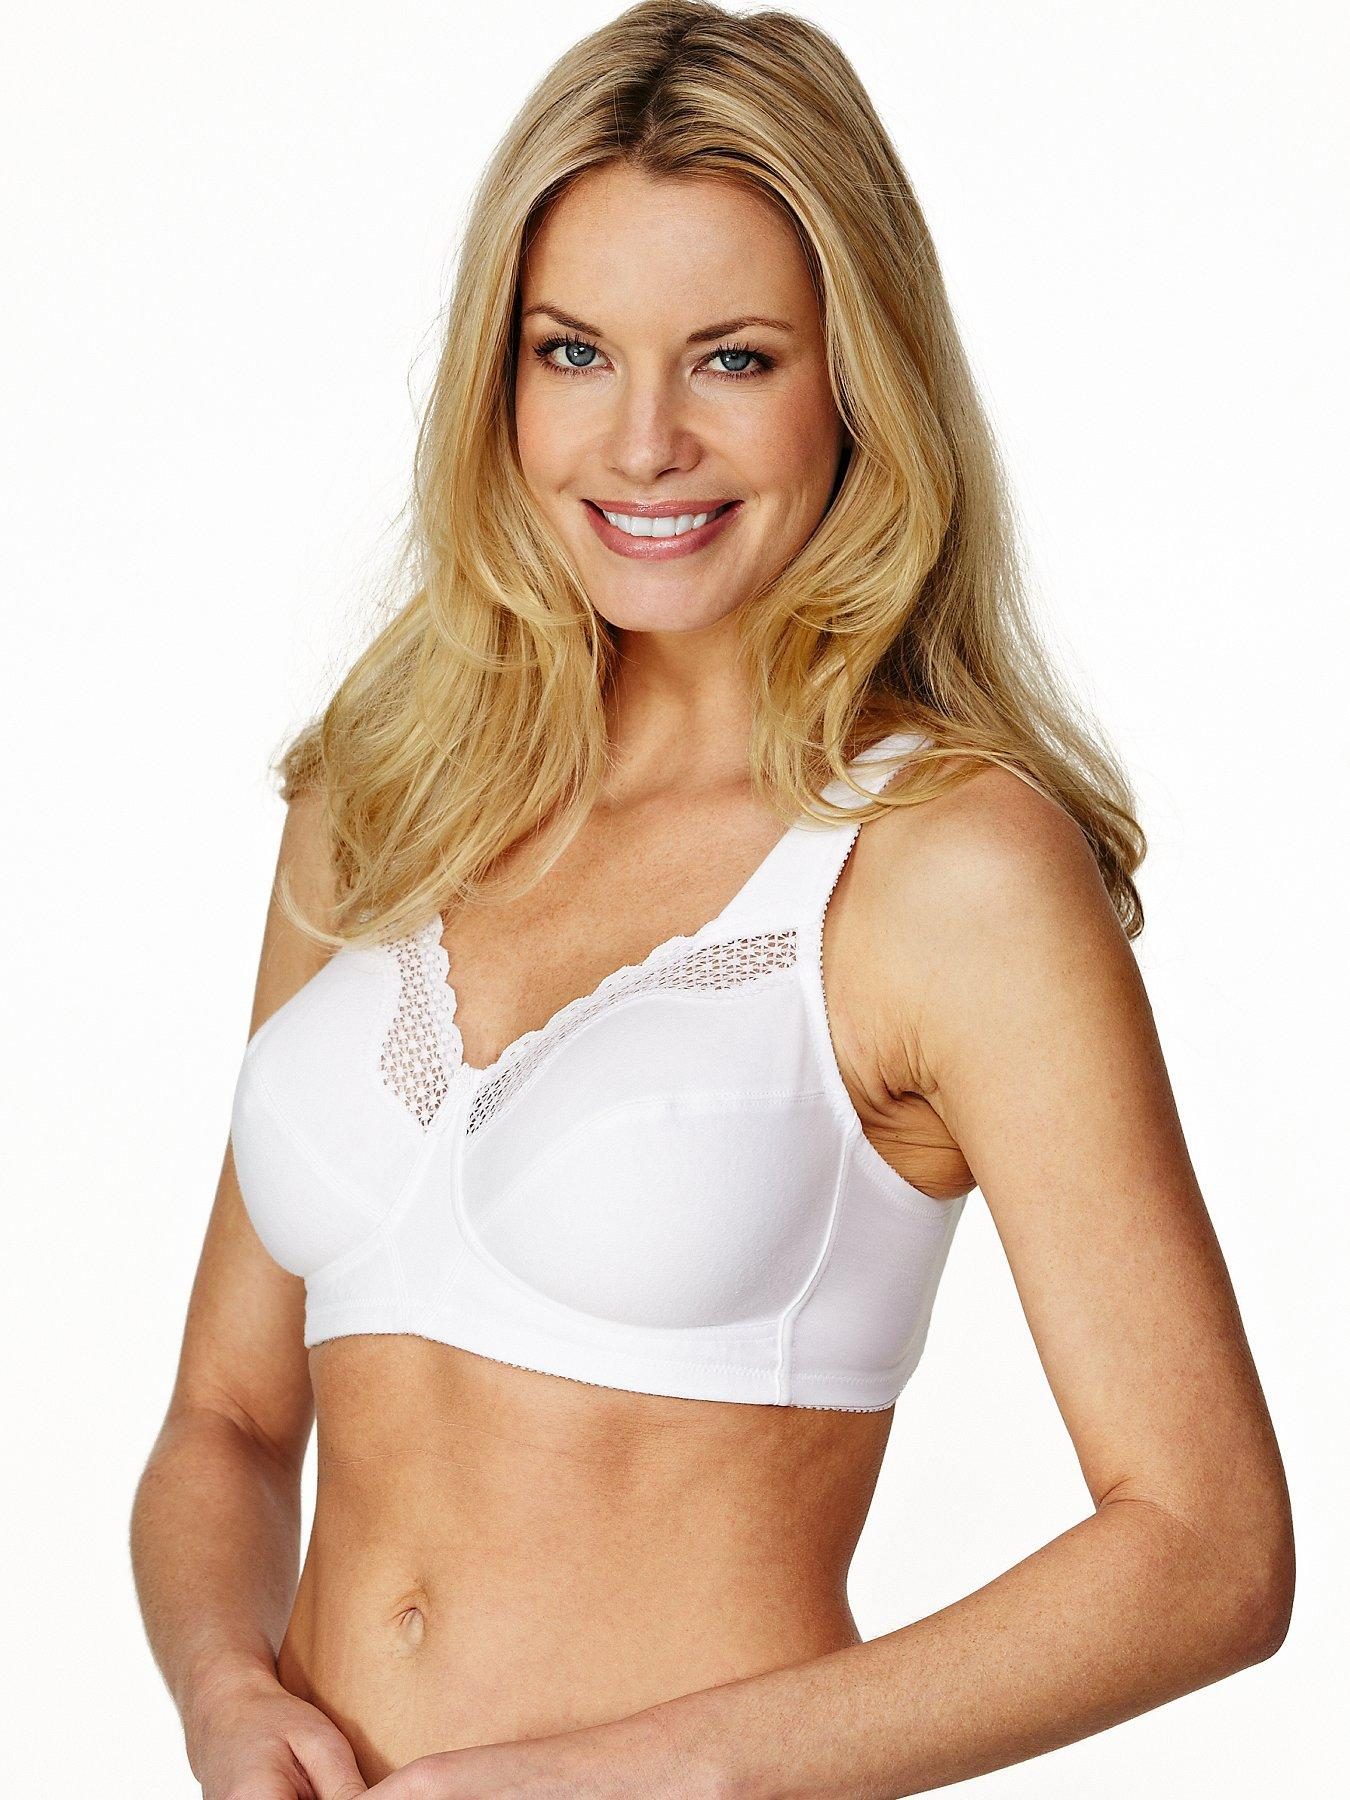 Bestform Soft Lace Trim Bra - White, White,Nude,Black